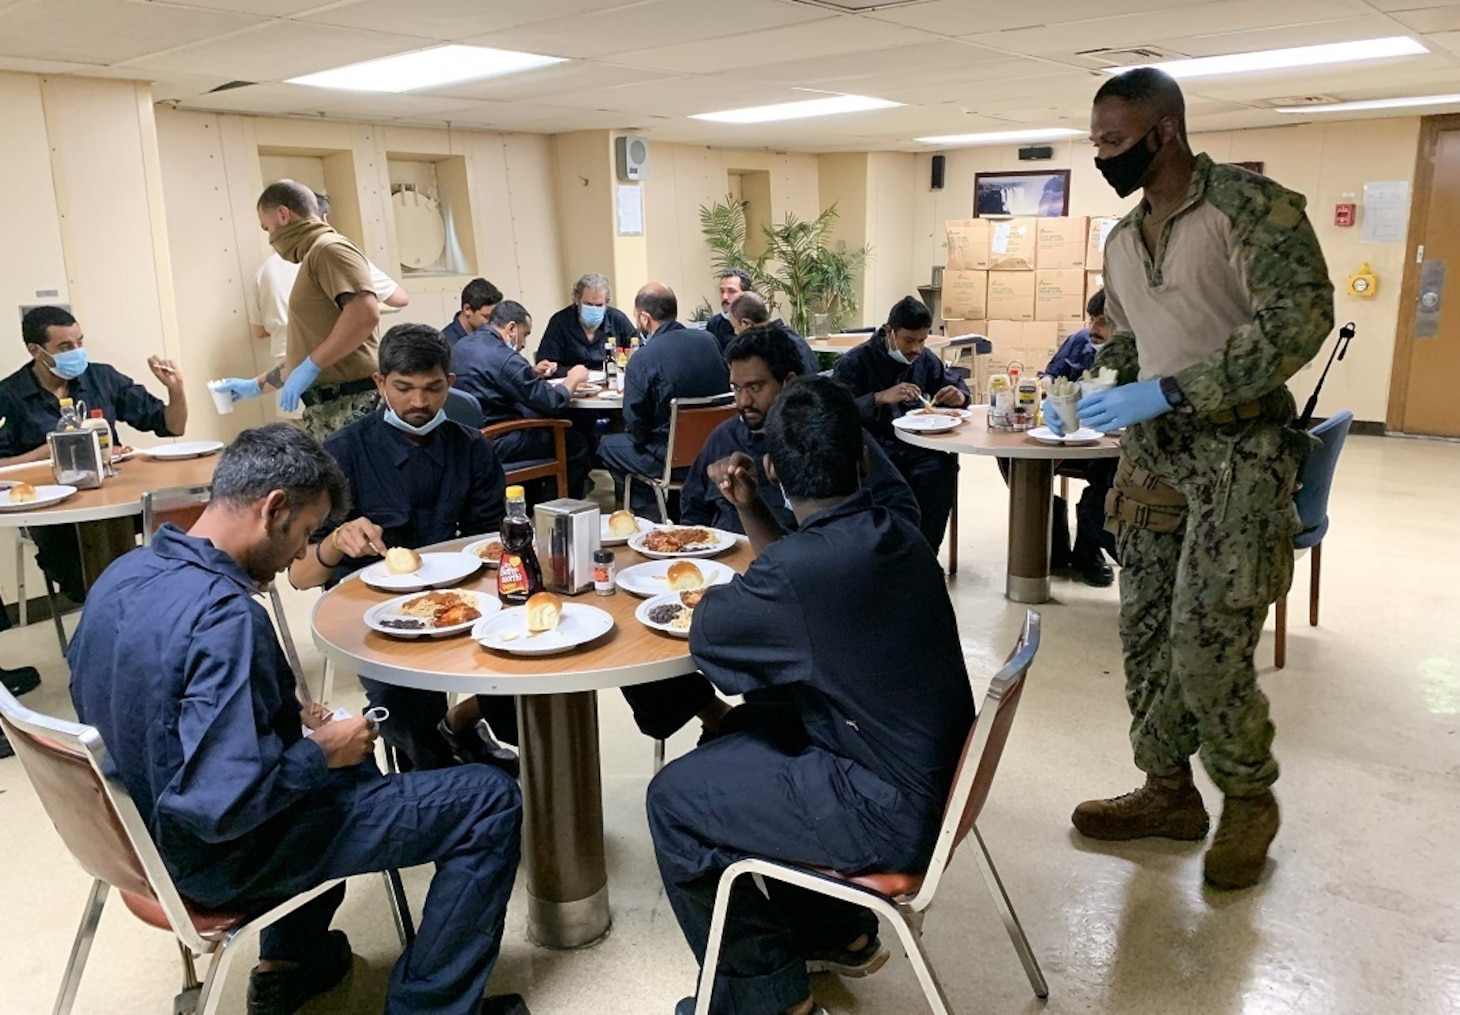 Gunner's Mate 1st Class Magezi Johnson and Master-at-Arms 3rd Class Gurney White, assigned to Embarked Security Intelligence Team 11, deployed with Commander, Task Force (CTF) 56, aboard the Military Sealift Command fleet replenishment oiler USNS Patuxent (T-AO 201), serve hot meals to rescued crew members from motor vessel Falcon Line, while underway in the Gulf of Aden, June 8.